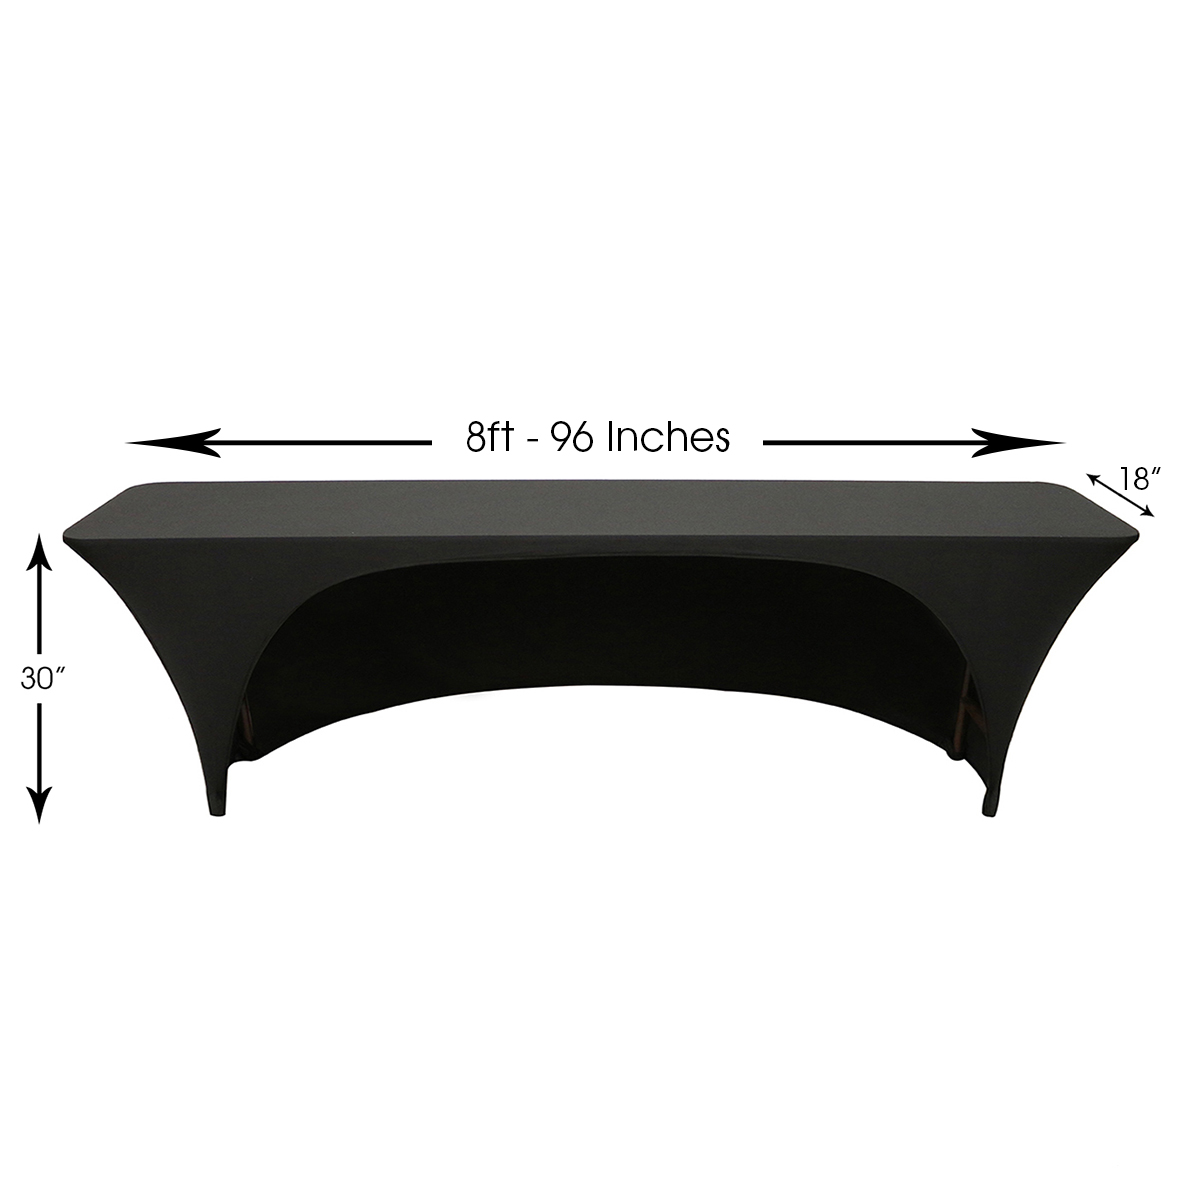 stretch-spandex-8ft-18-inches-open-back-rectangular-table-covers-black-dimensions.jpg